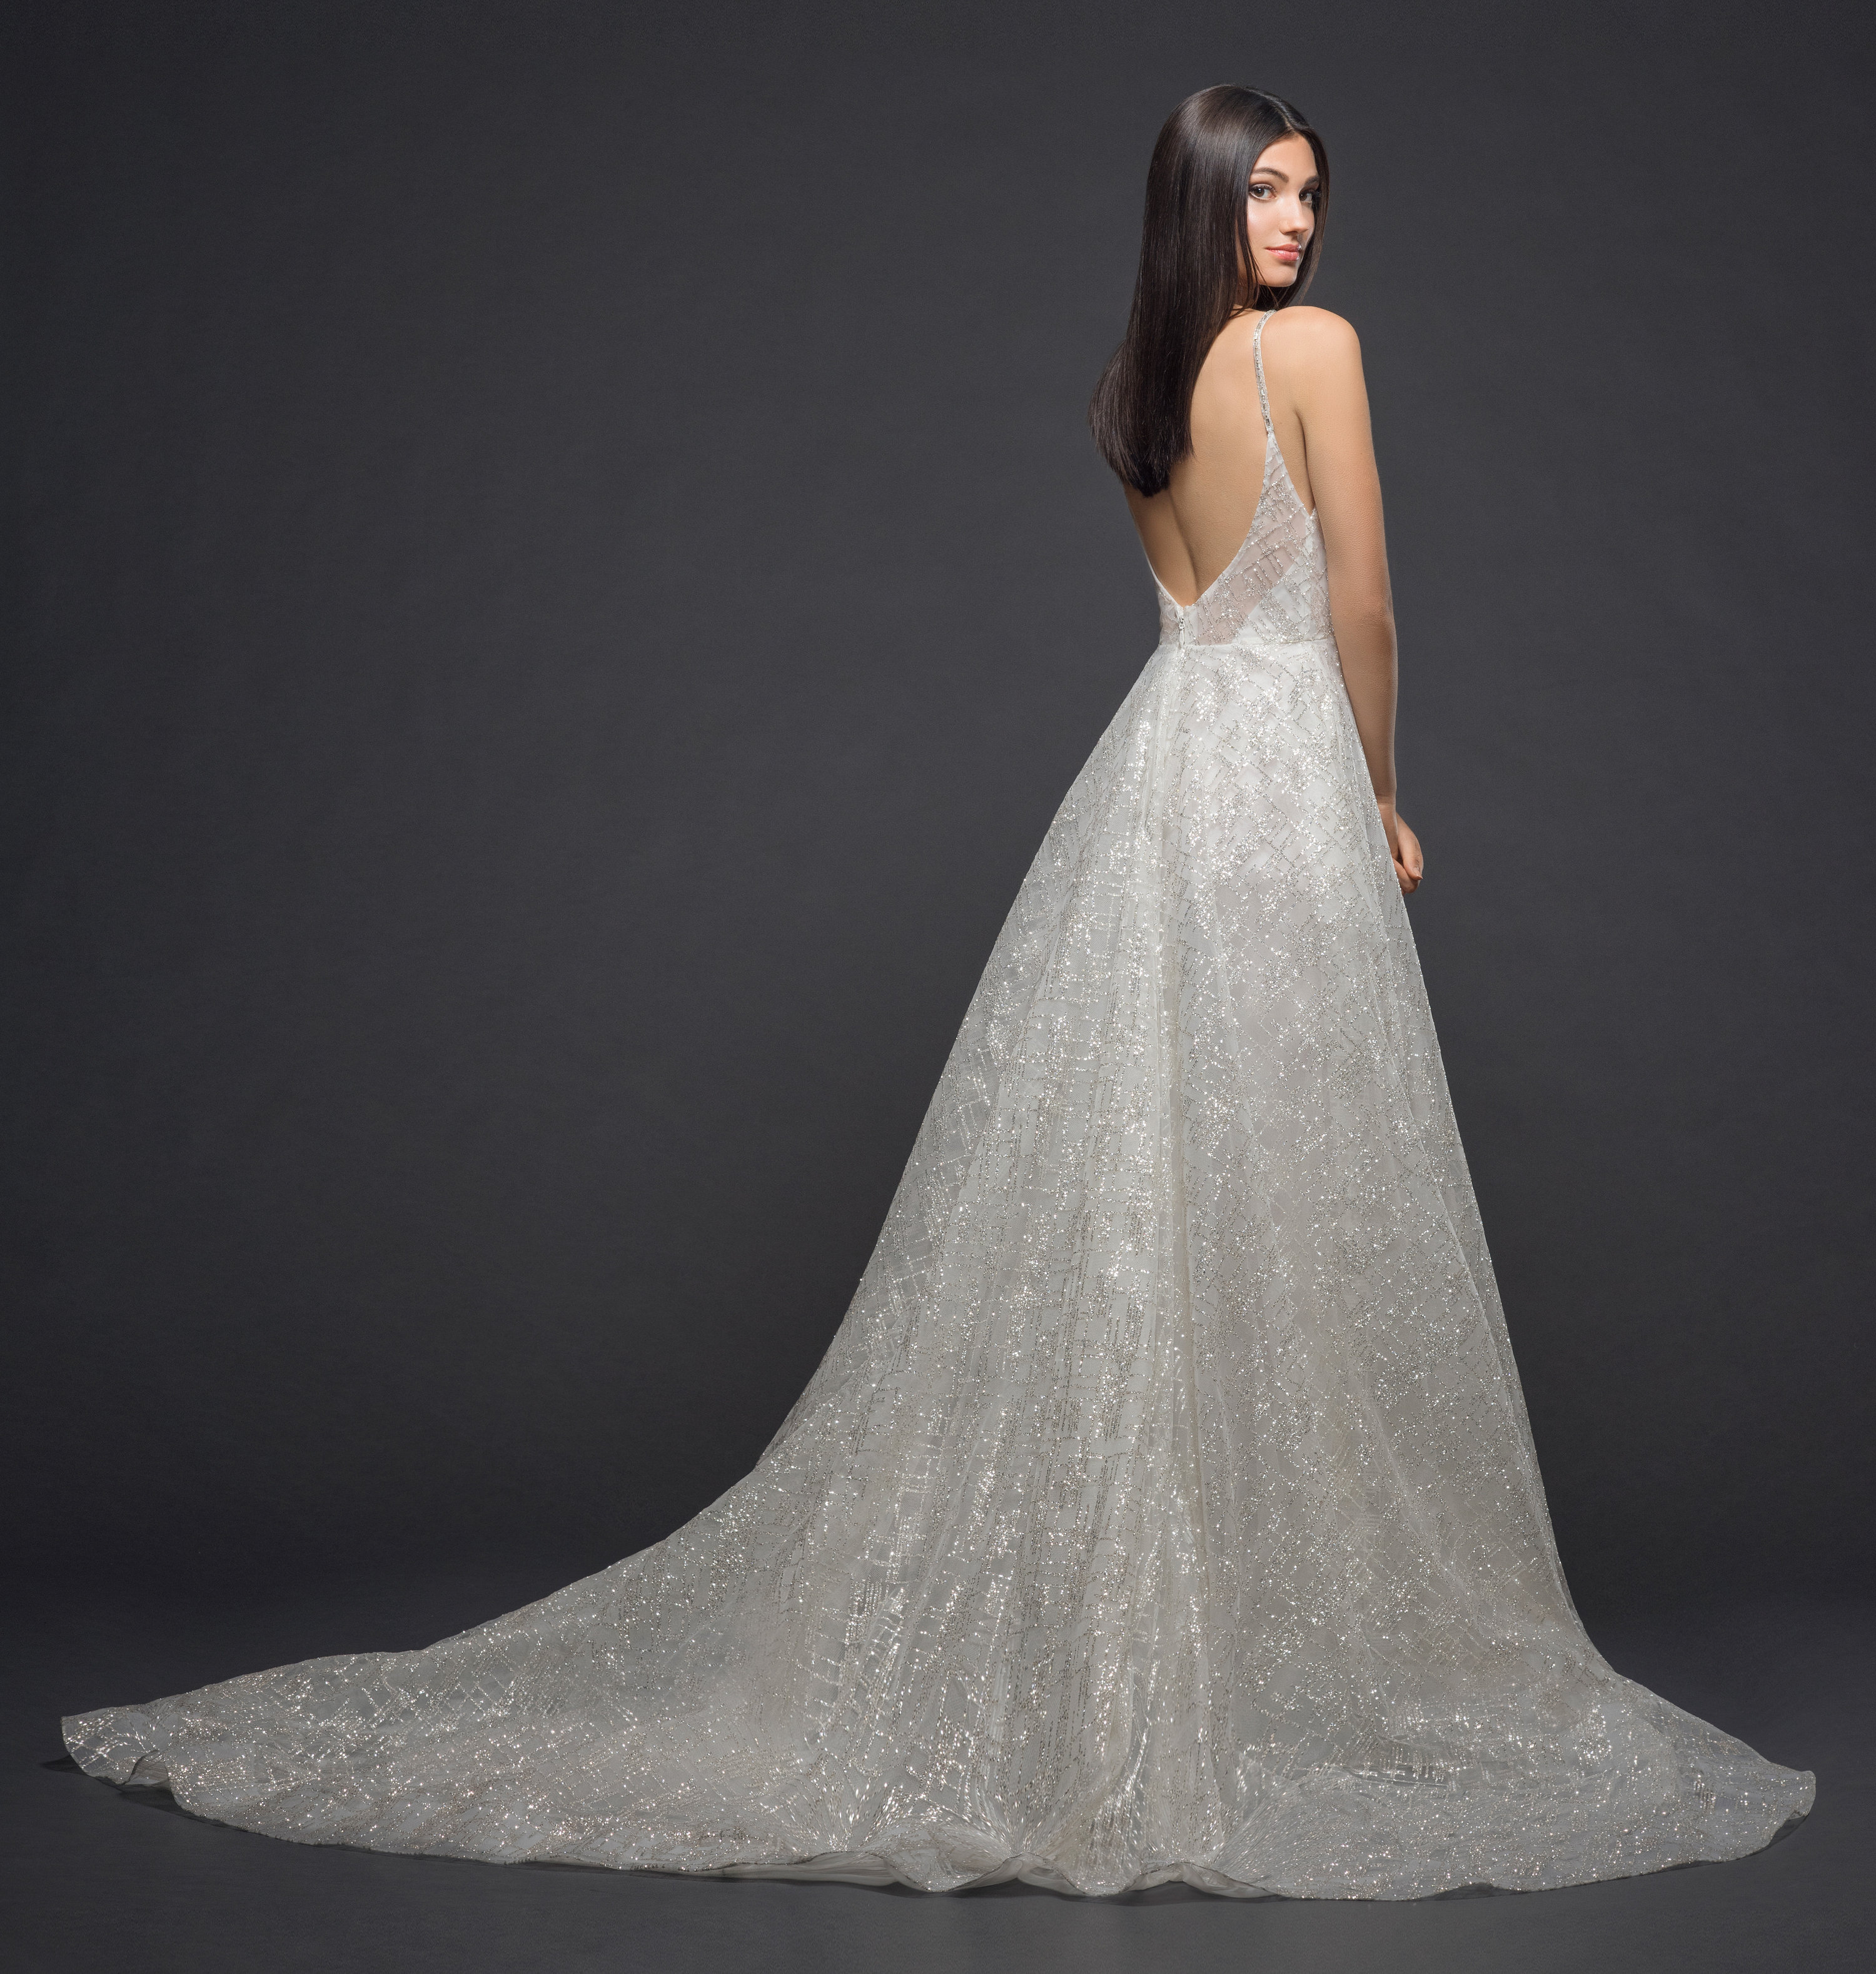 Bridal Gowns and Wedding Dresses by JLM Couture - Style 3814